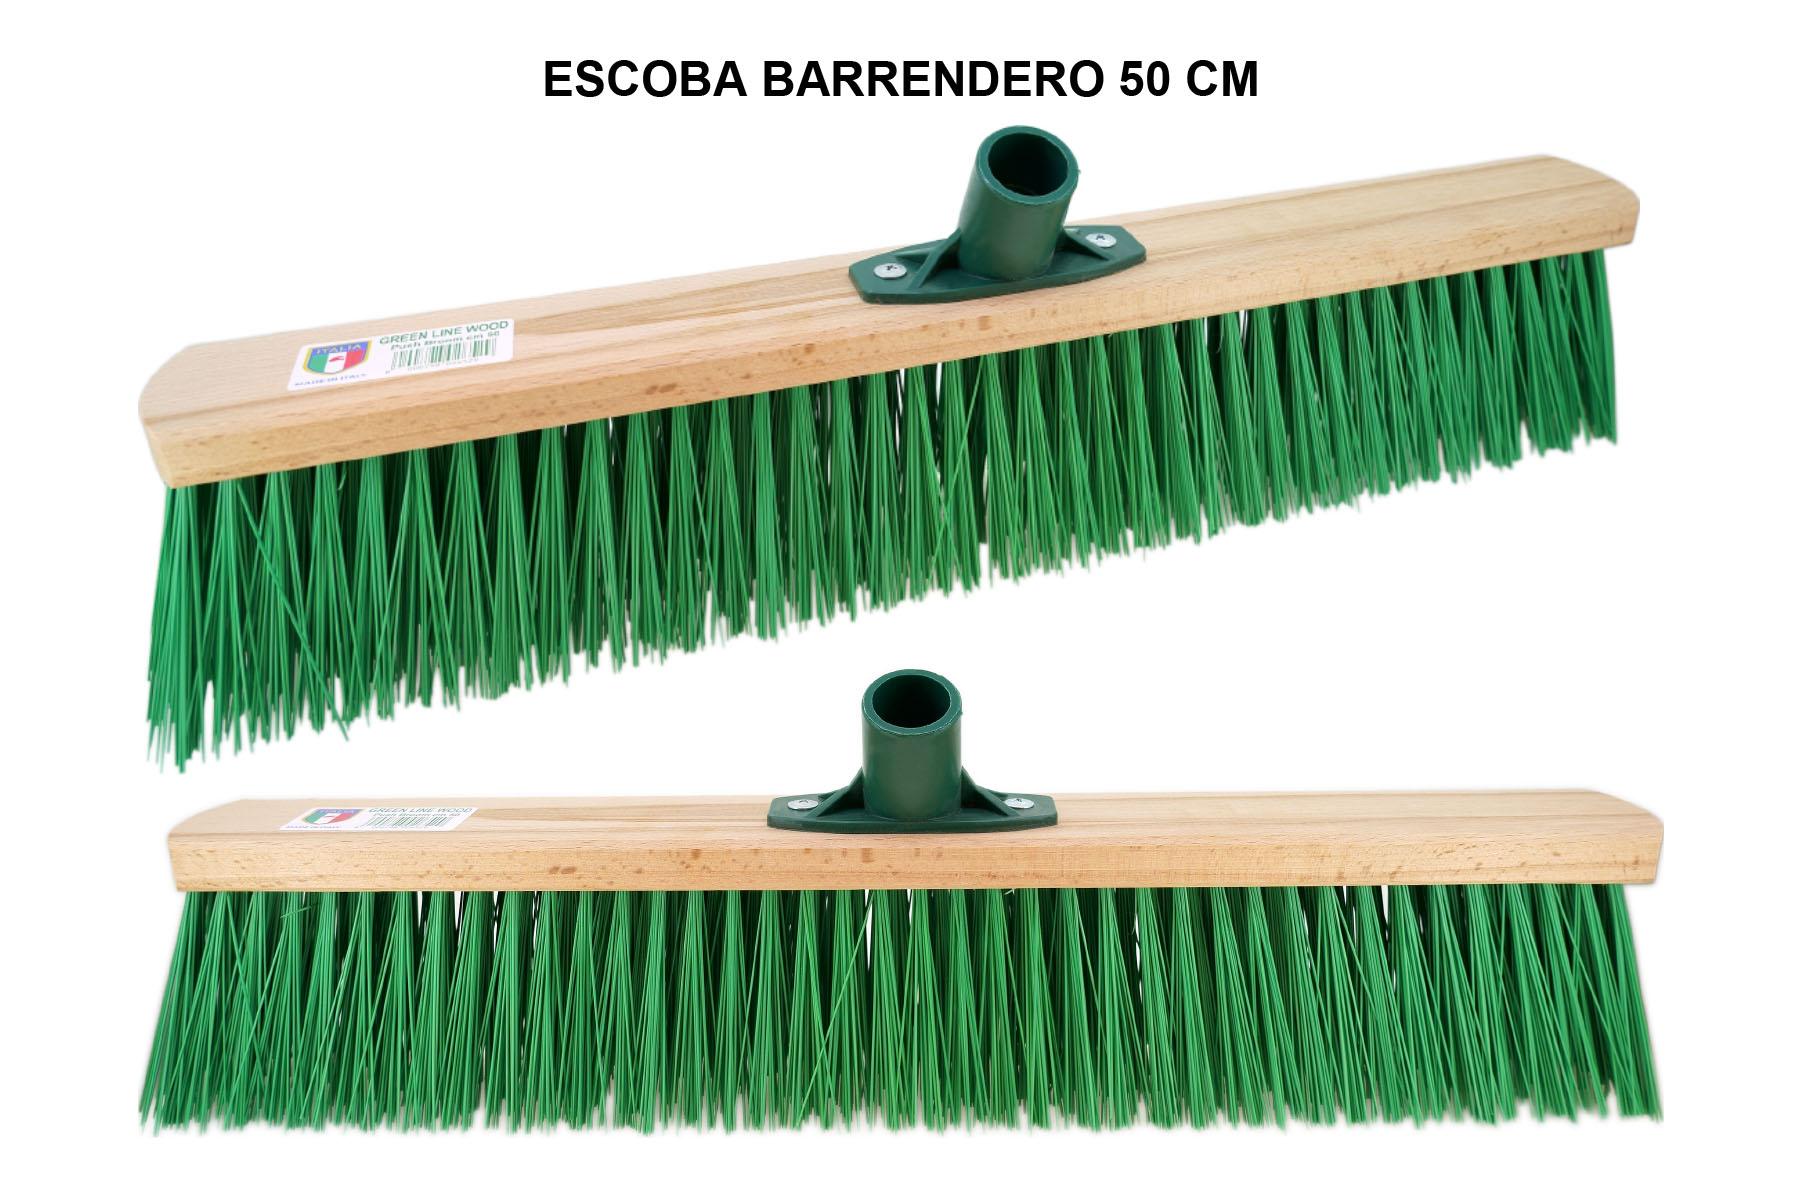 ESCOBA BARRENDERO 50 CM